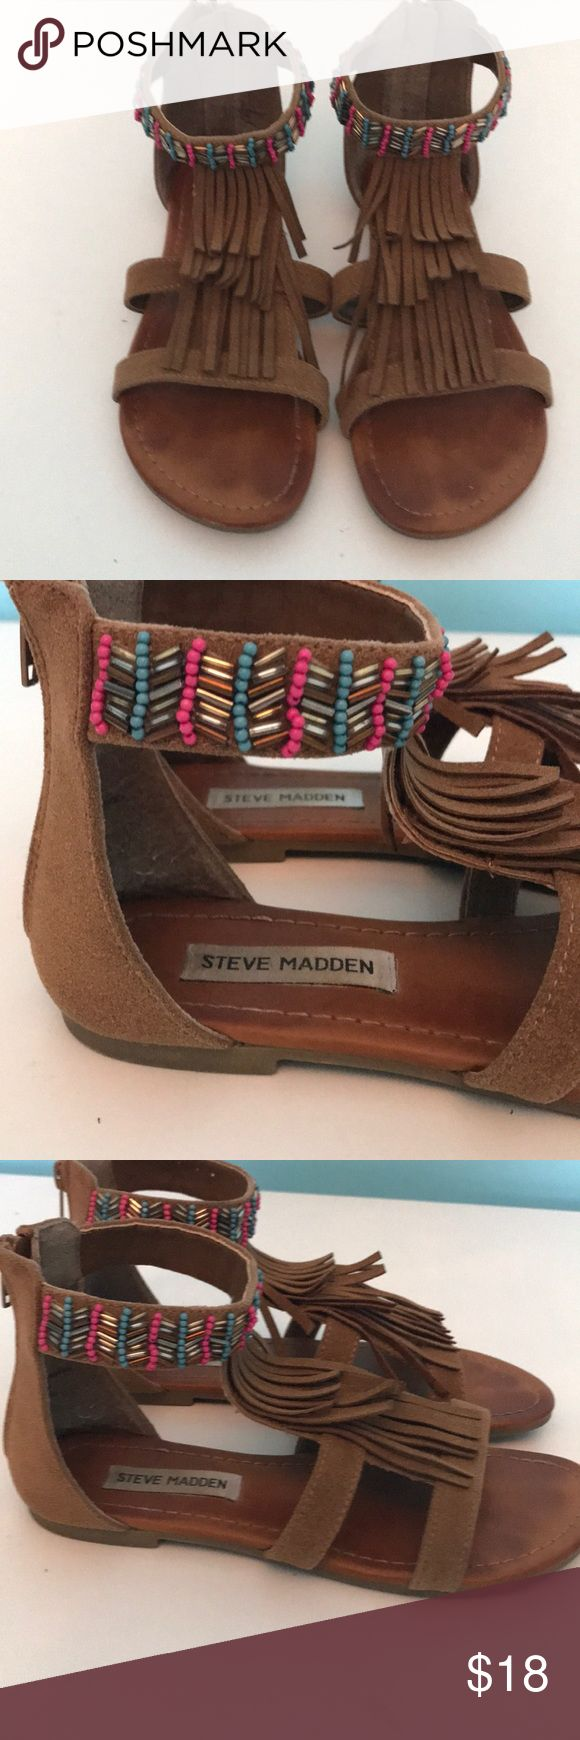 Steve Madden Kids Shoes Adorable used Steve Madden Kids shoes in size 5 Brown suede fringe with beading detail. Steve Madden Shoes Sandals & Flip Flops